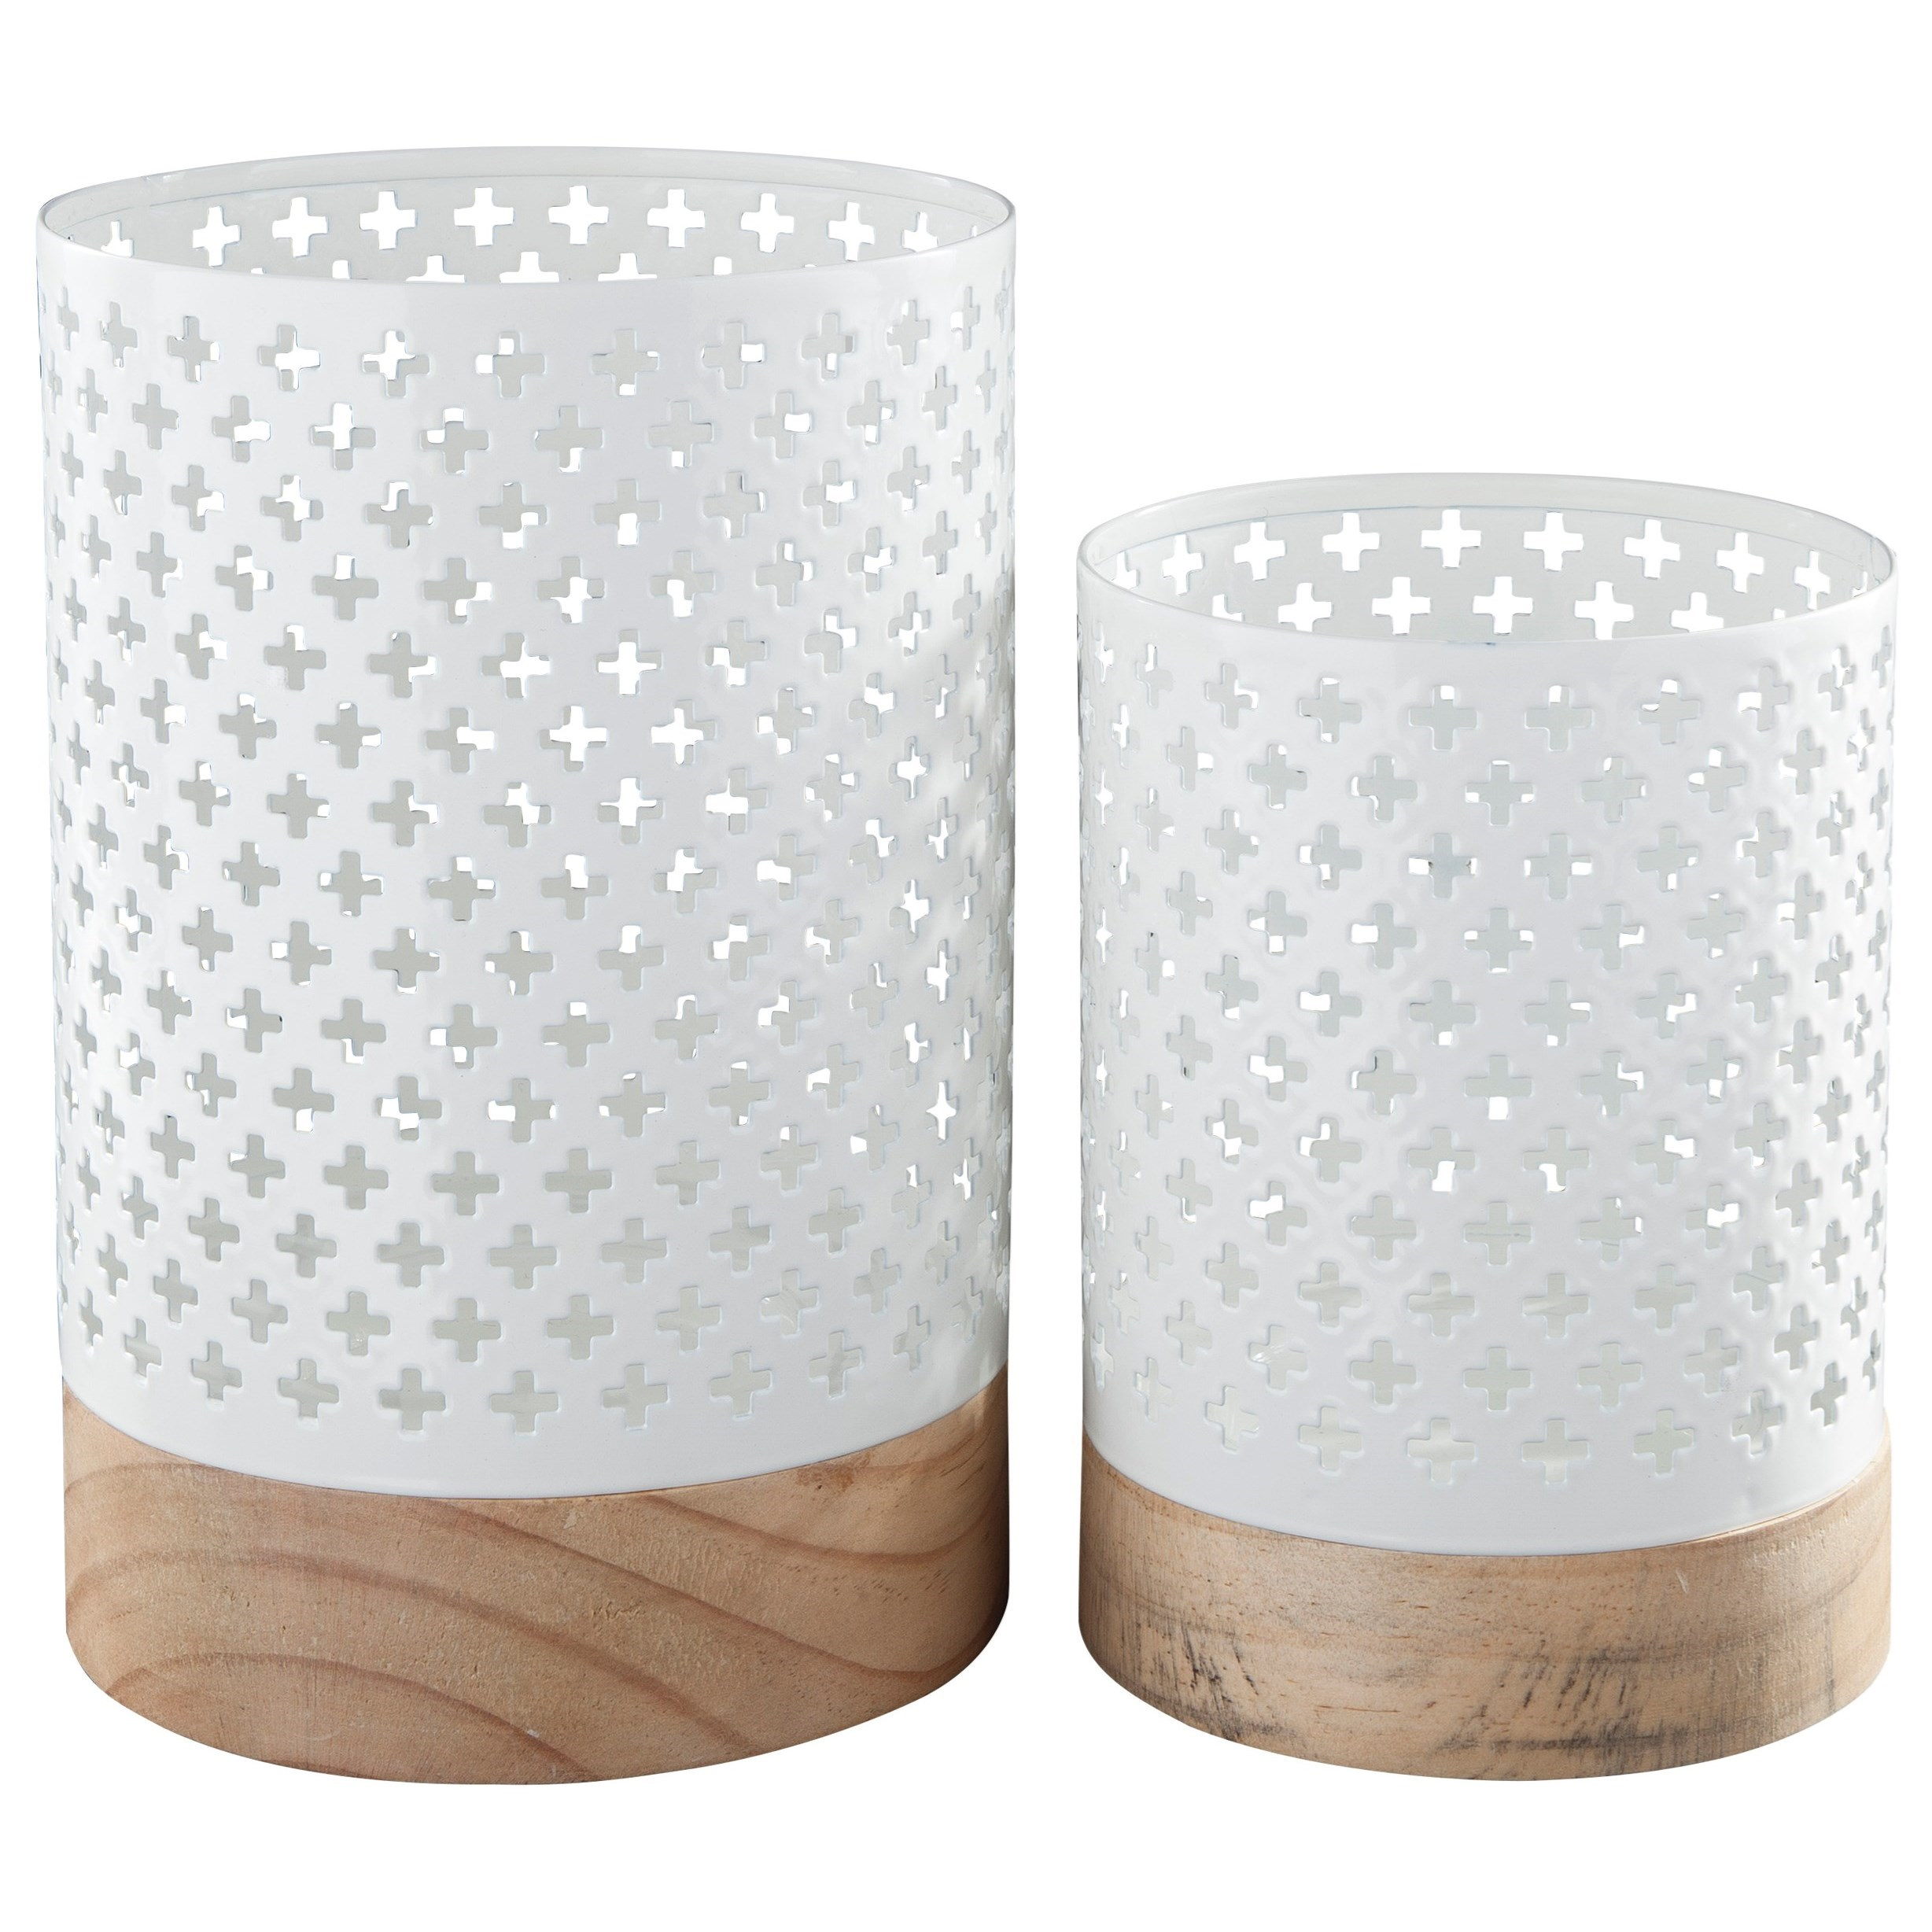 Signature Design by Ashley Accents Daichi Candle Holder (Set of 2) - Item Number: A2000169C